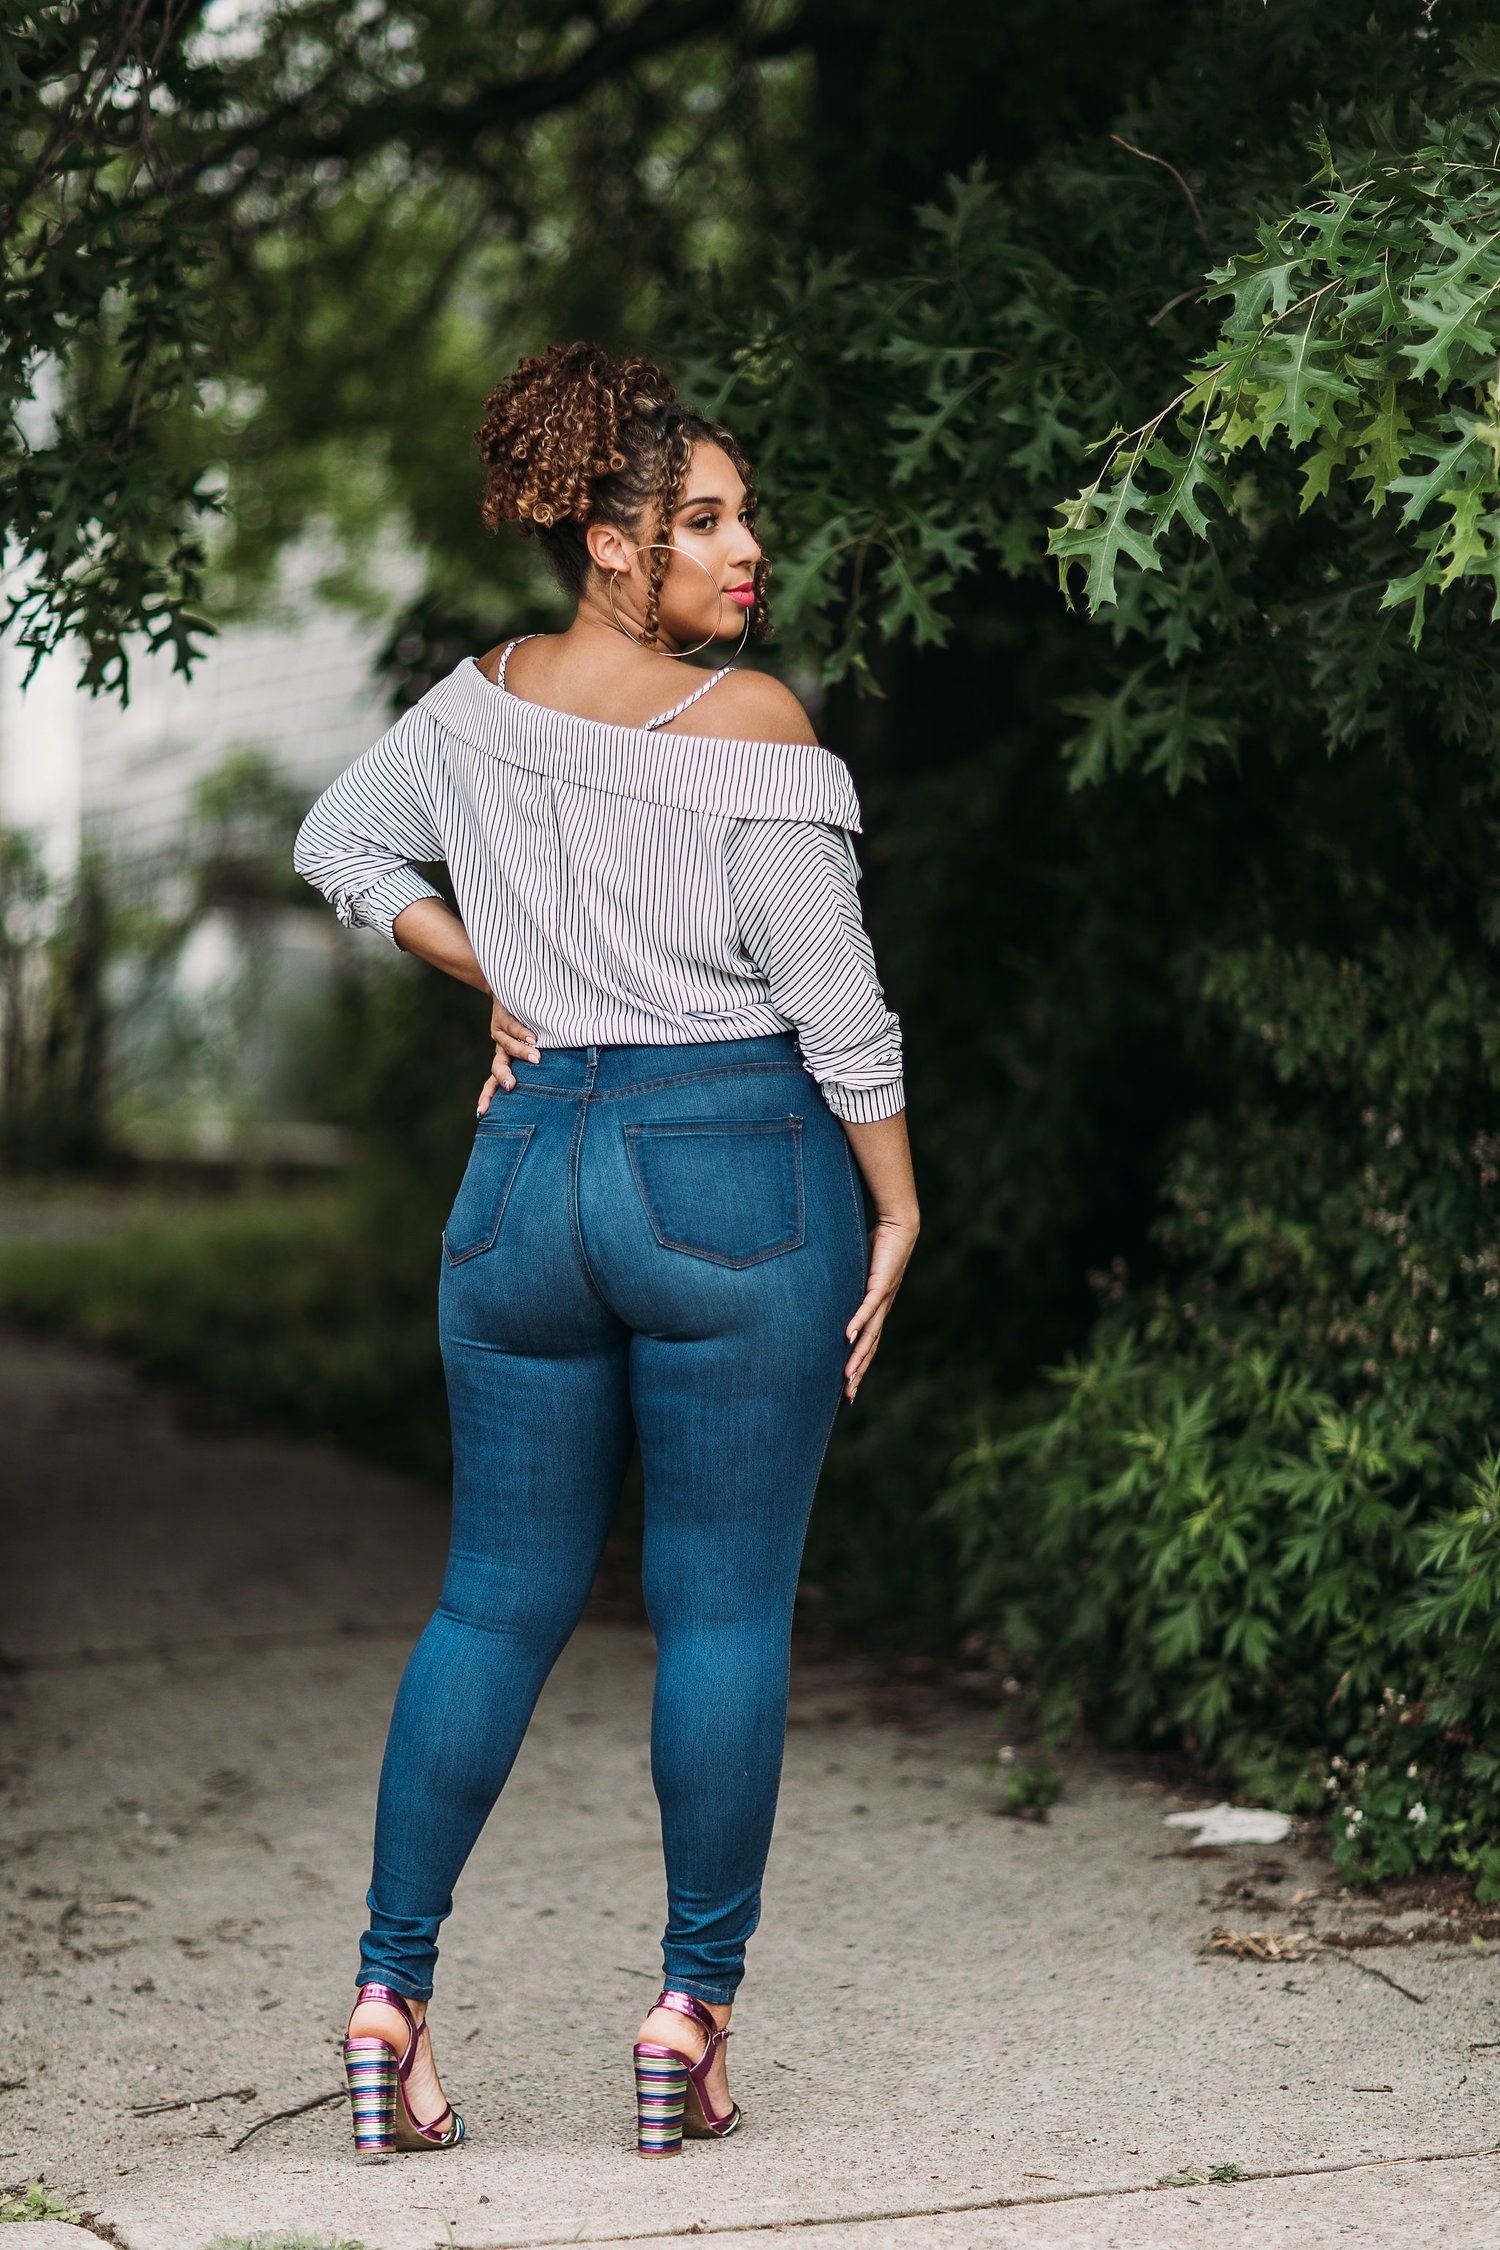 best selection of 2019 free delivery top-rated latest Are Fashion Nova Jeans for Curvy Girls? — All Things Ada